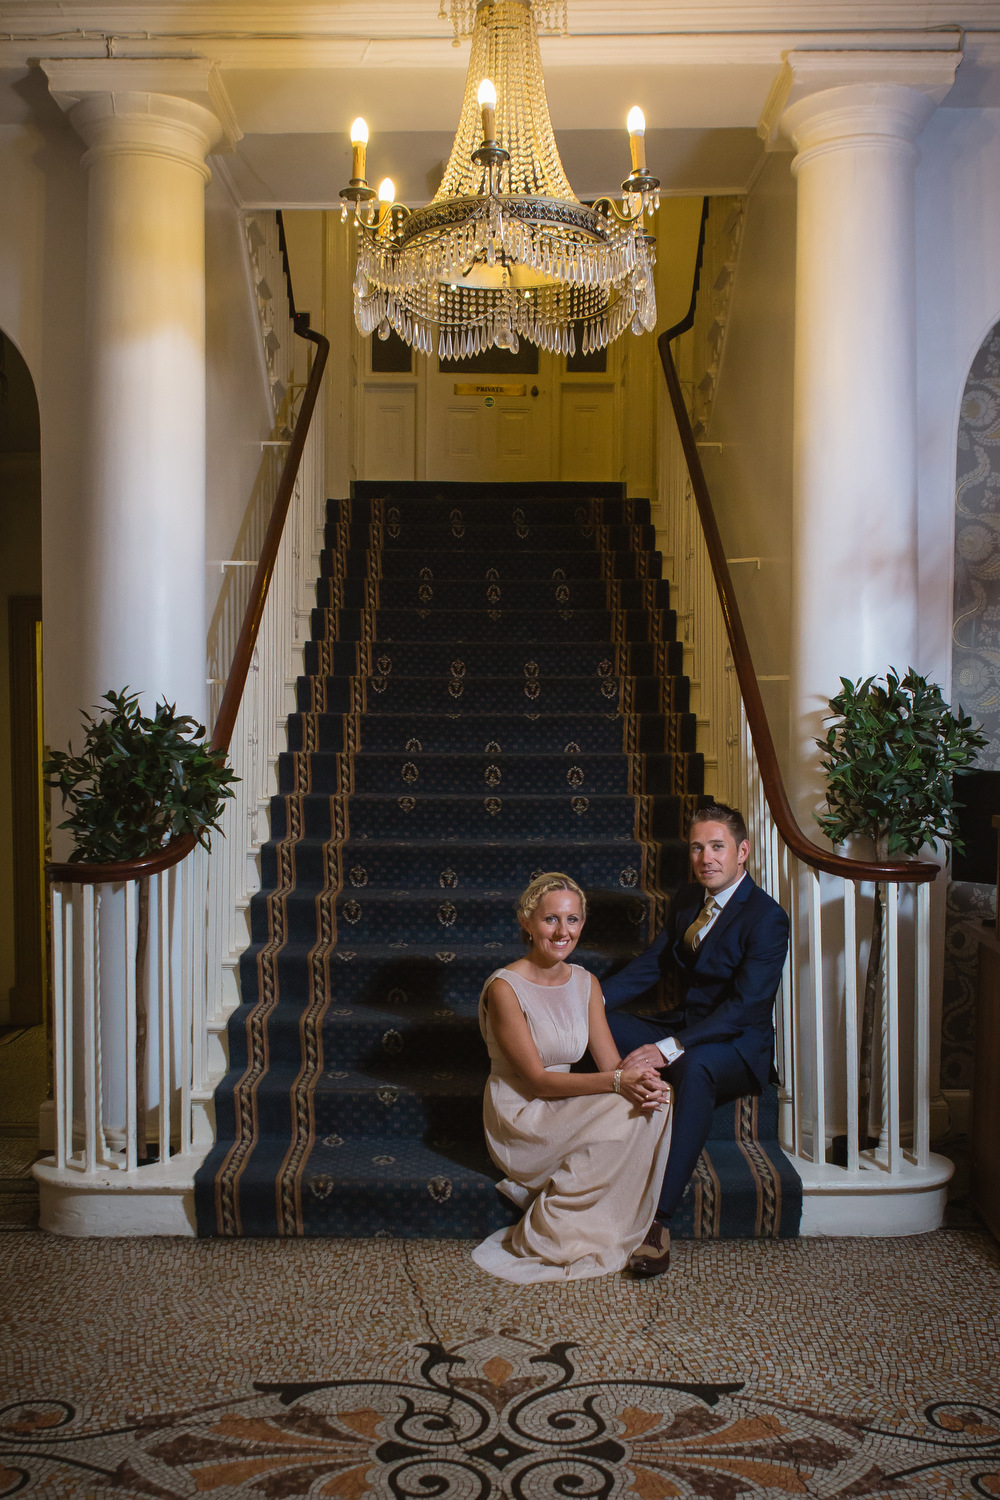 charnwood_weddings_city_rooms_leicester_dave_jane120.JPG